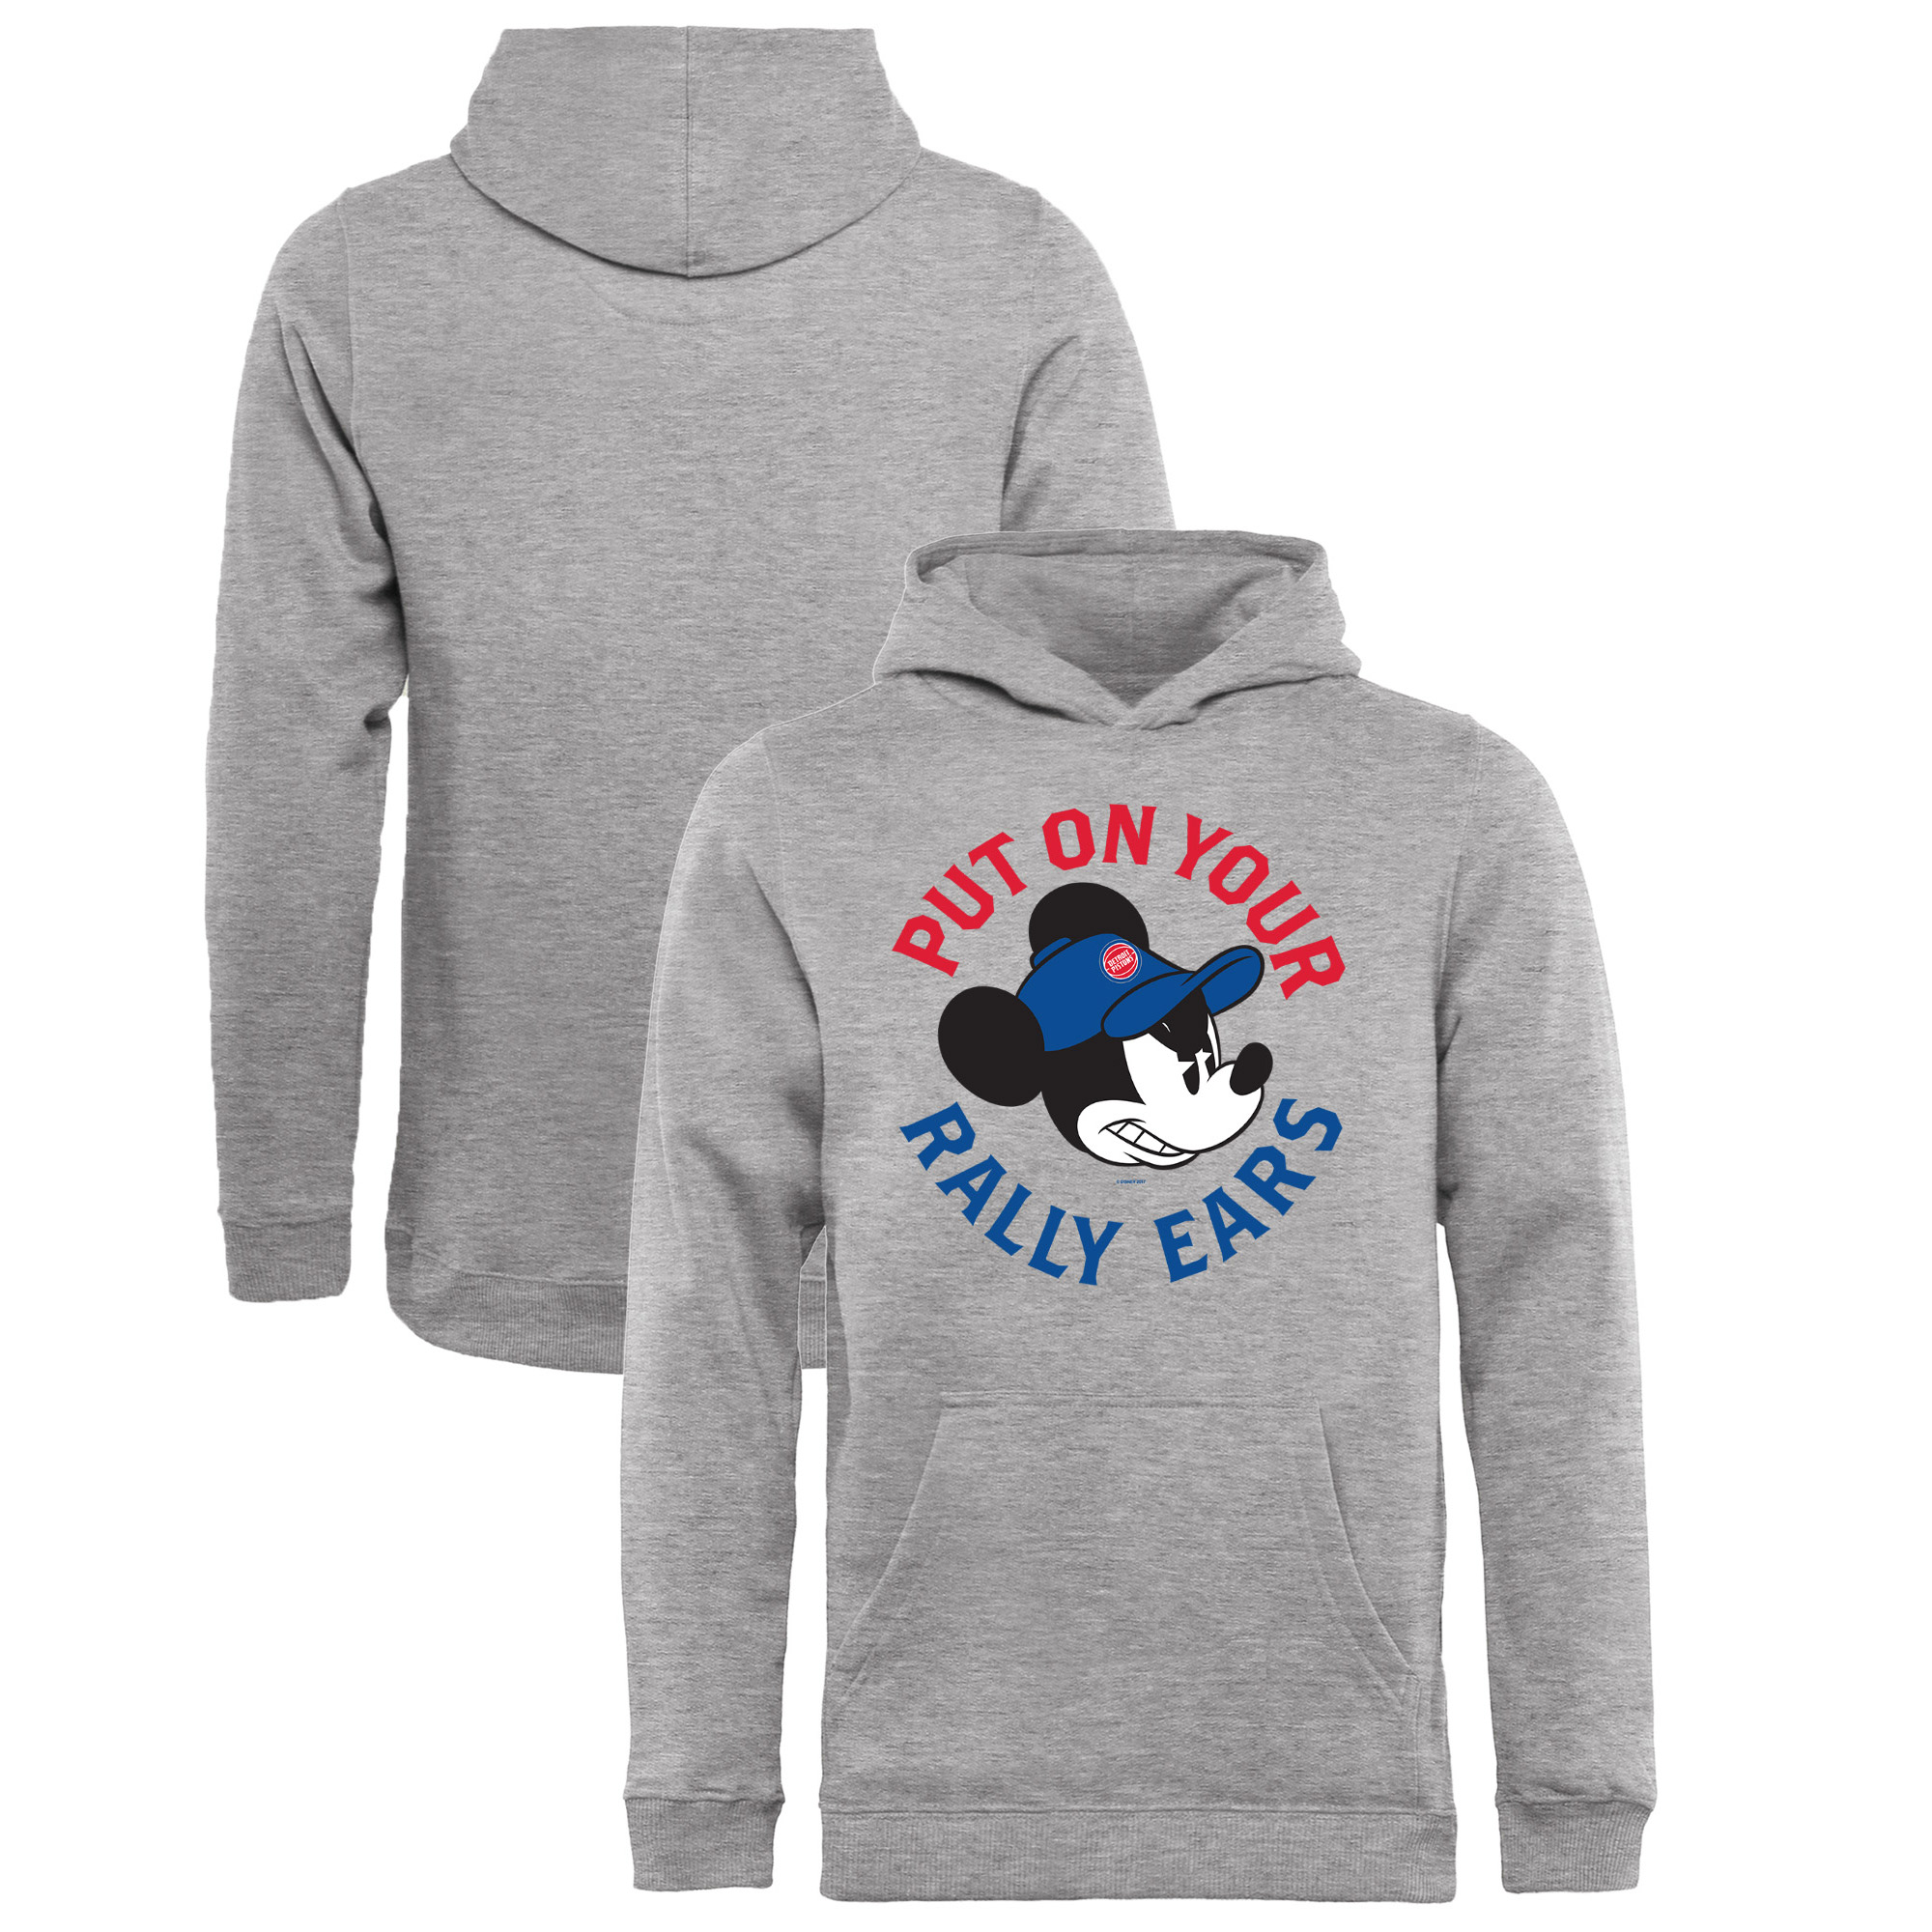 Detroit Pistons Fanatics Branded Youth Disney Rally Ears Pullover Hoodie - Ash